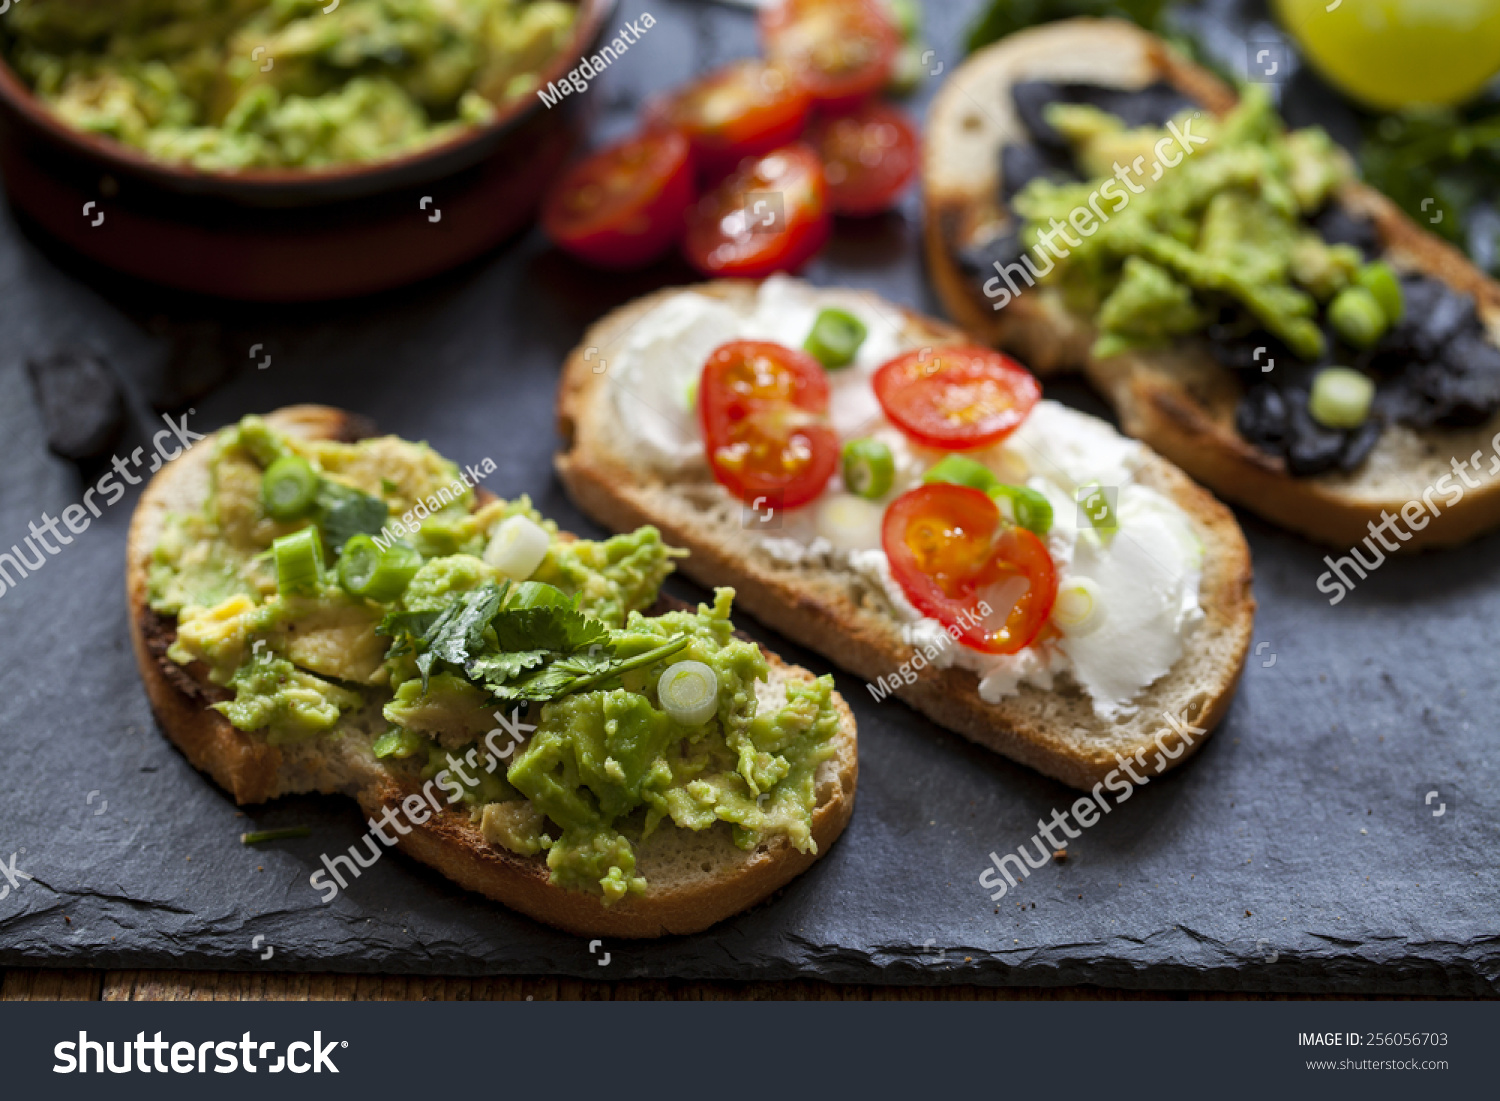 Canapes avocado spread goat cheese black stock photo for Canape spread